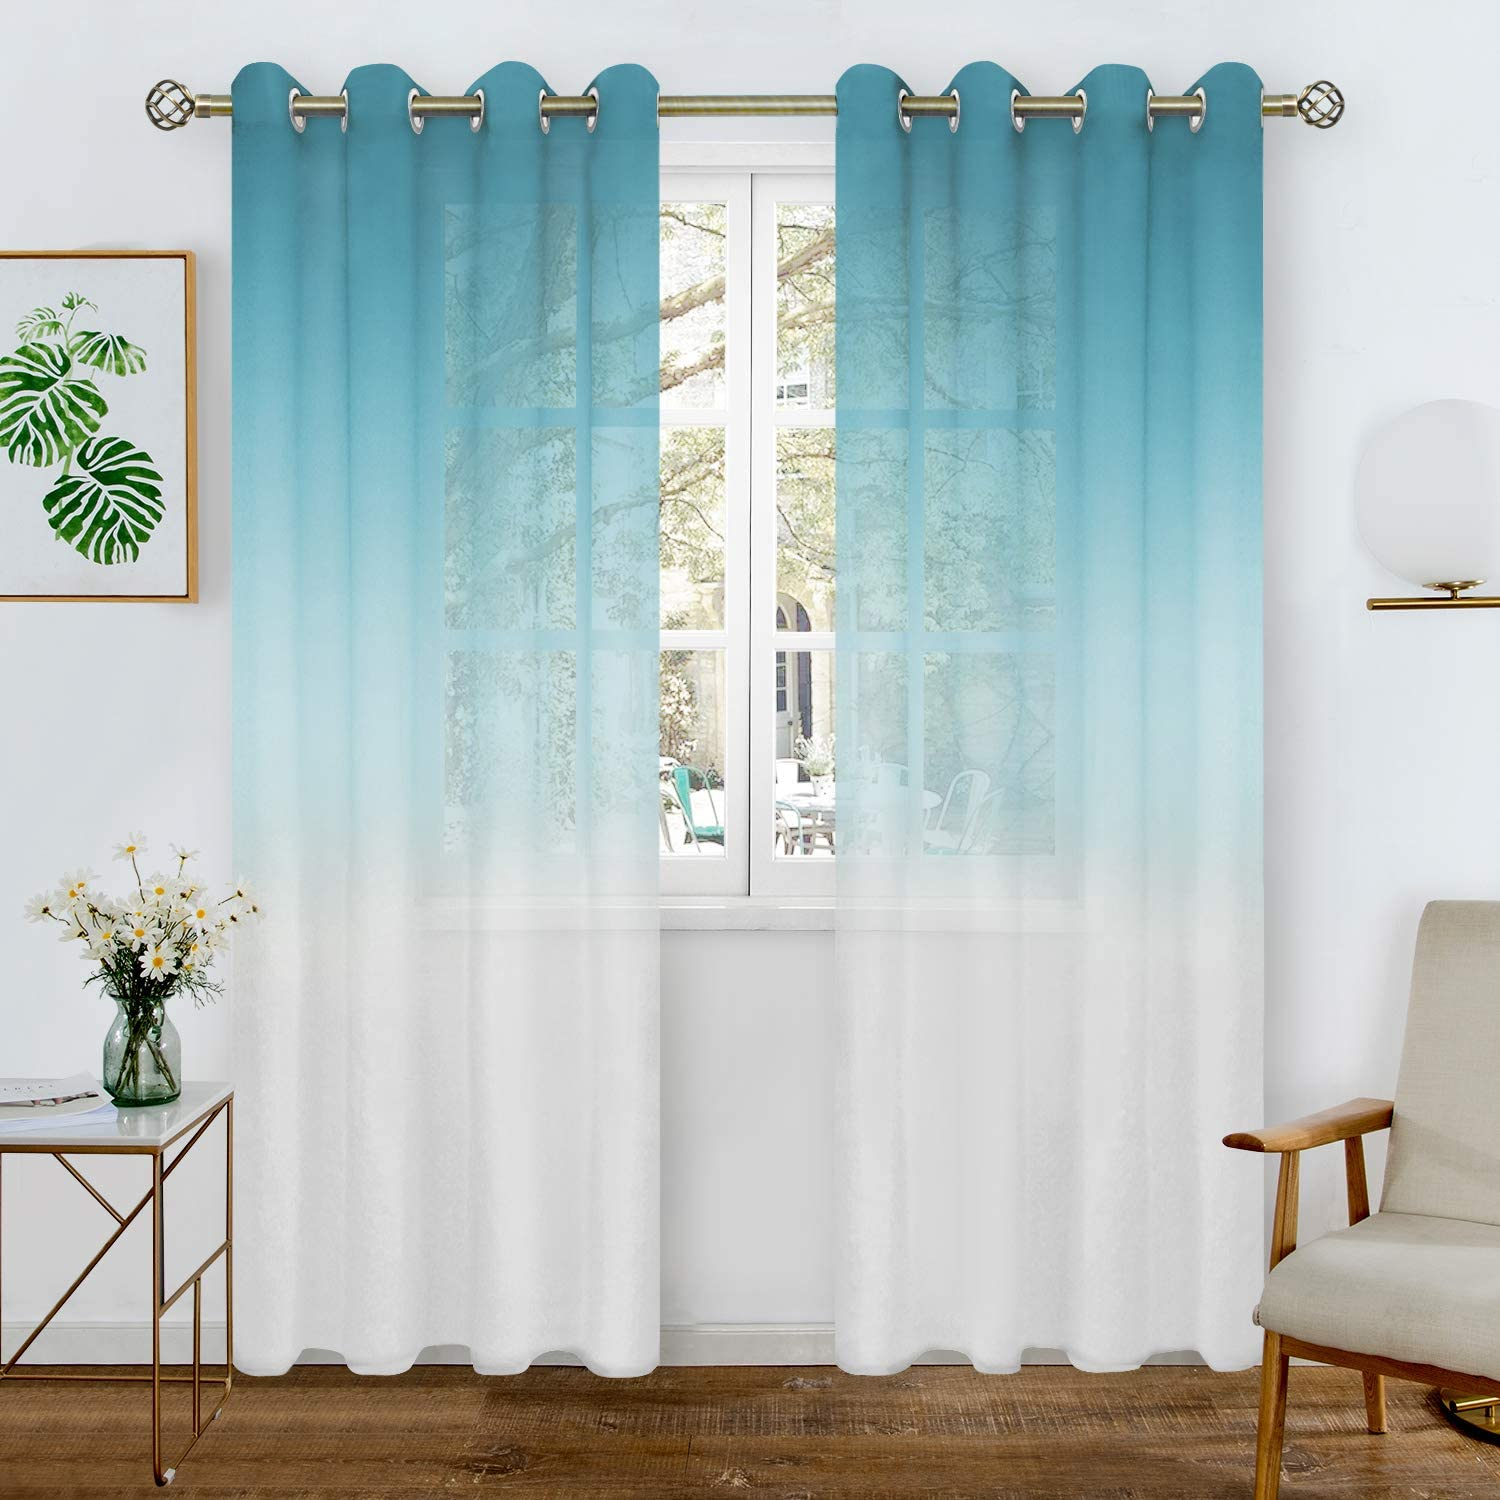 2 Panels of 52 x 72 Inch BGment Faux Linen Ombre Sheer Curtains for Living Room Black Grommet Semi Voile Light Filtering and Privacy Curtains for Bedroom